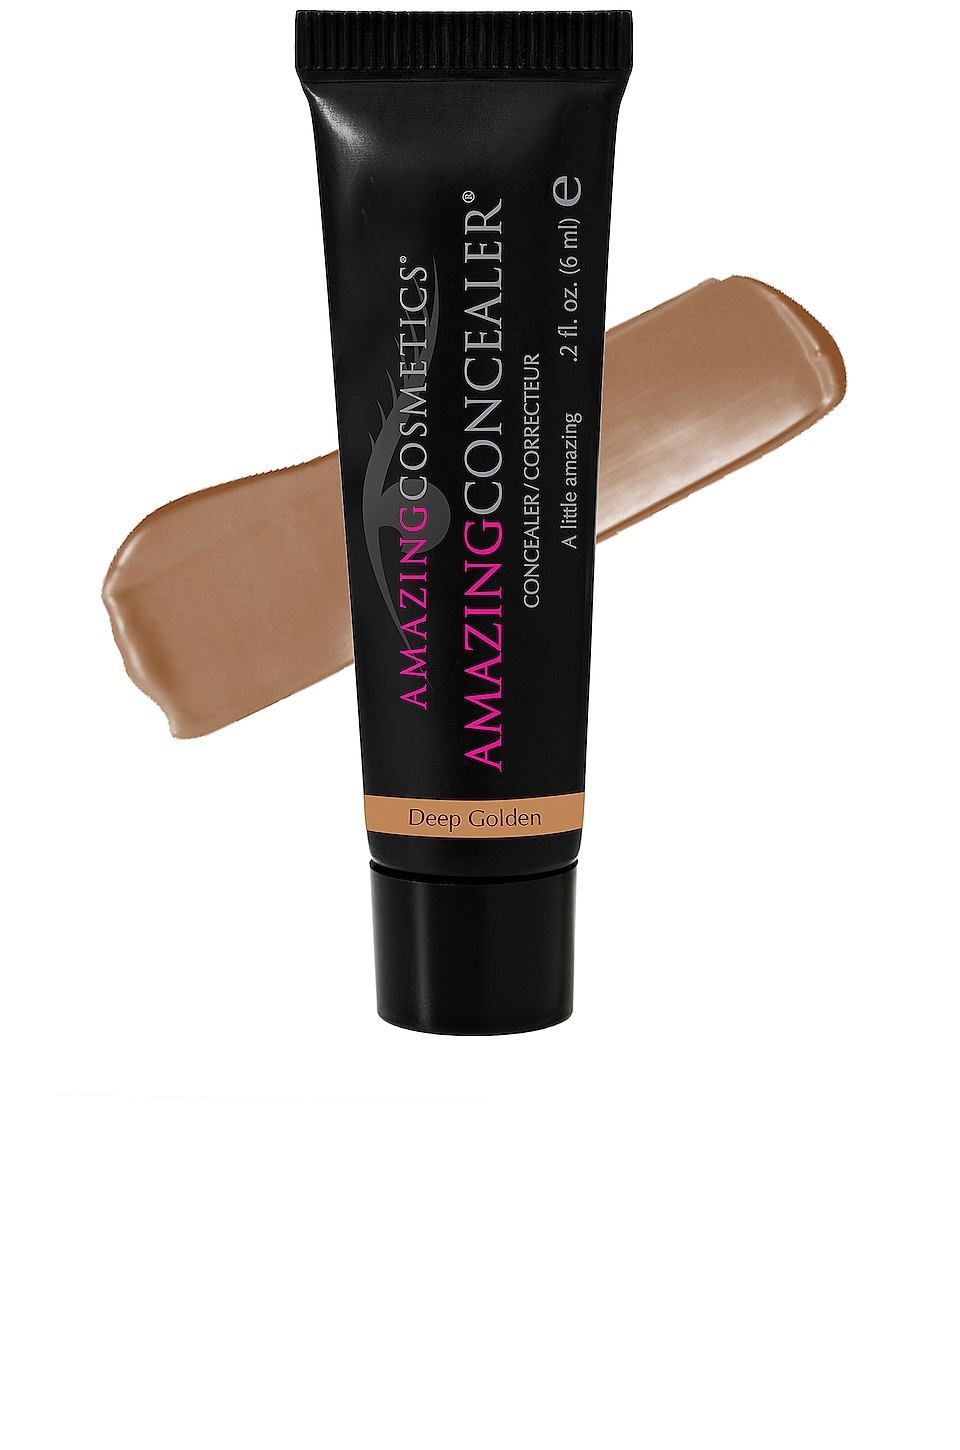 Amazing Cosmetics Amazing Concealer in Deep Golden